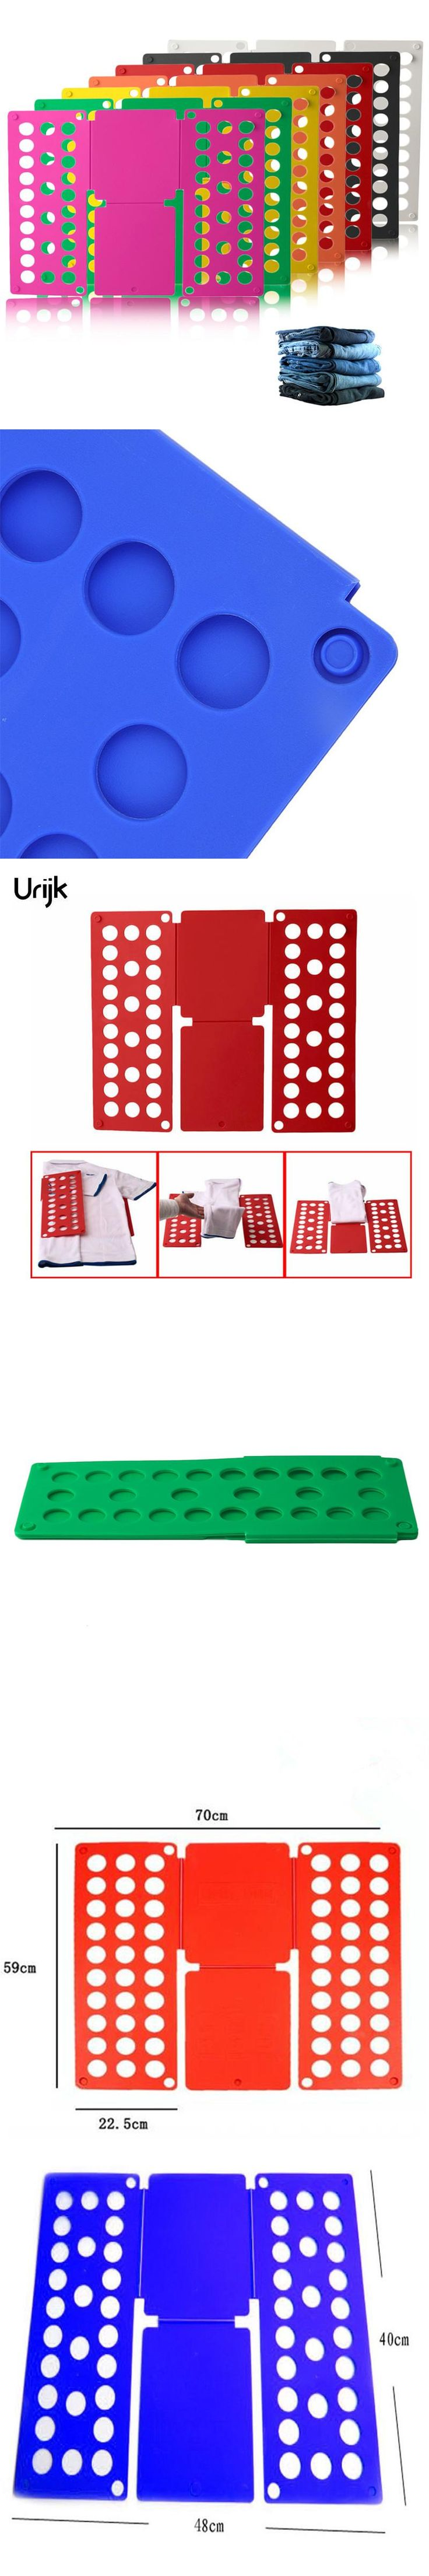 Urijk Red Practical Home Kid Clothes Adult Folder Organizer Plastic Quick T-Shirt Clothes Laundry Shirt Fold Folding Board